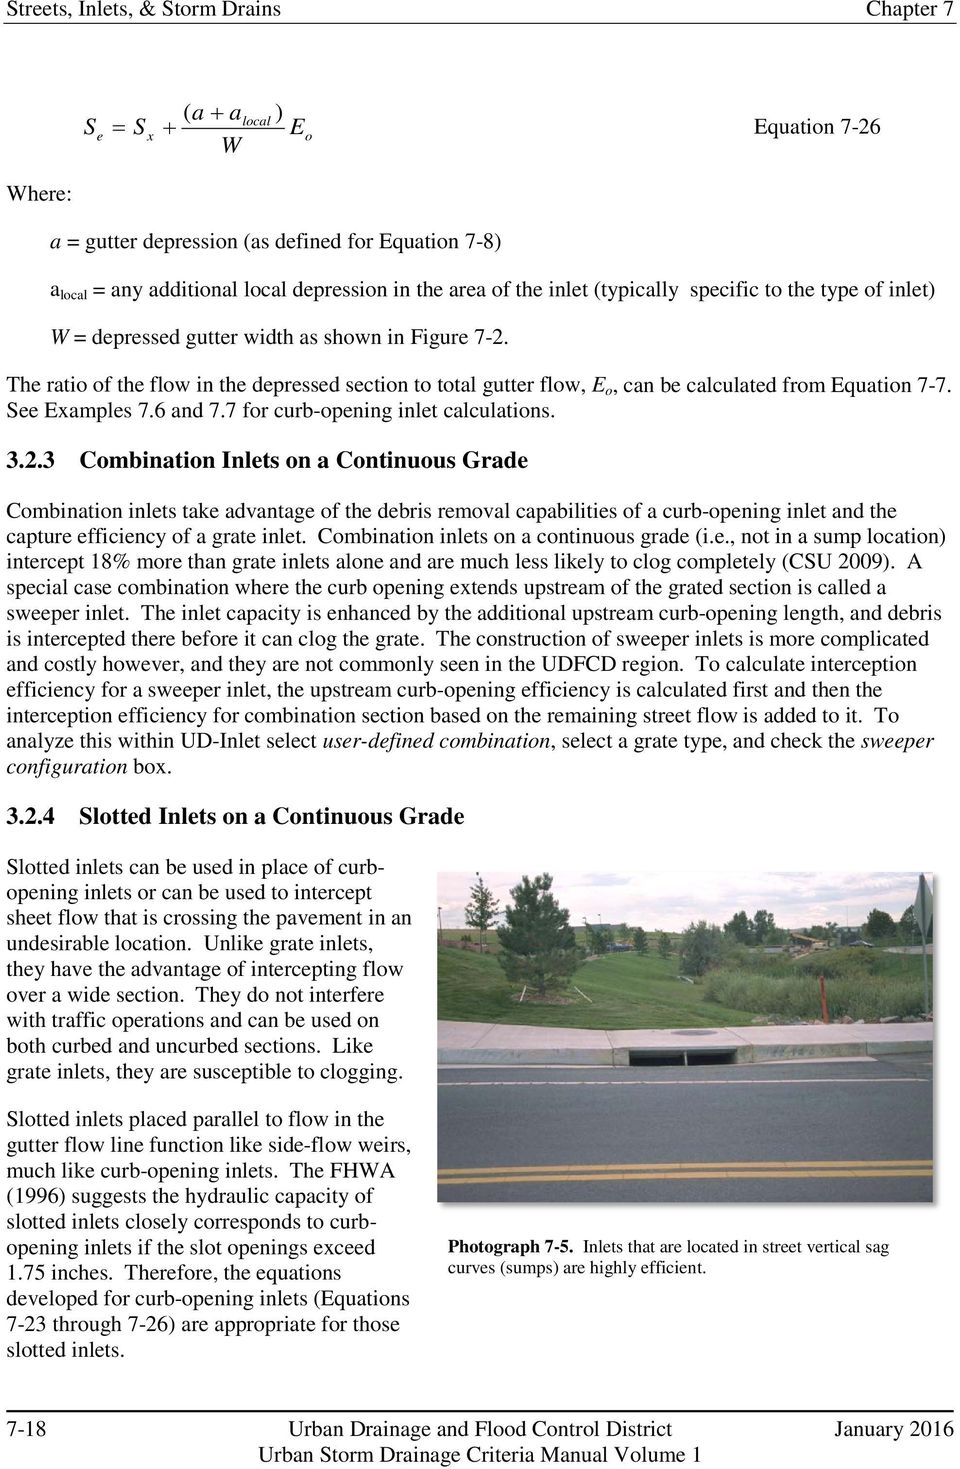 Chapter 7 Street, Inlets, and Storm Drains - PDF